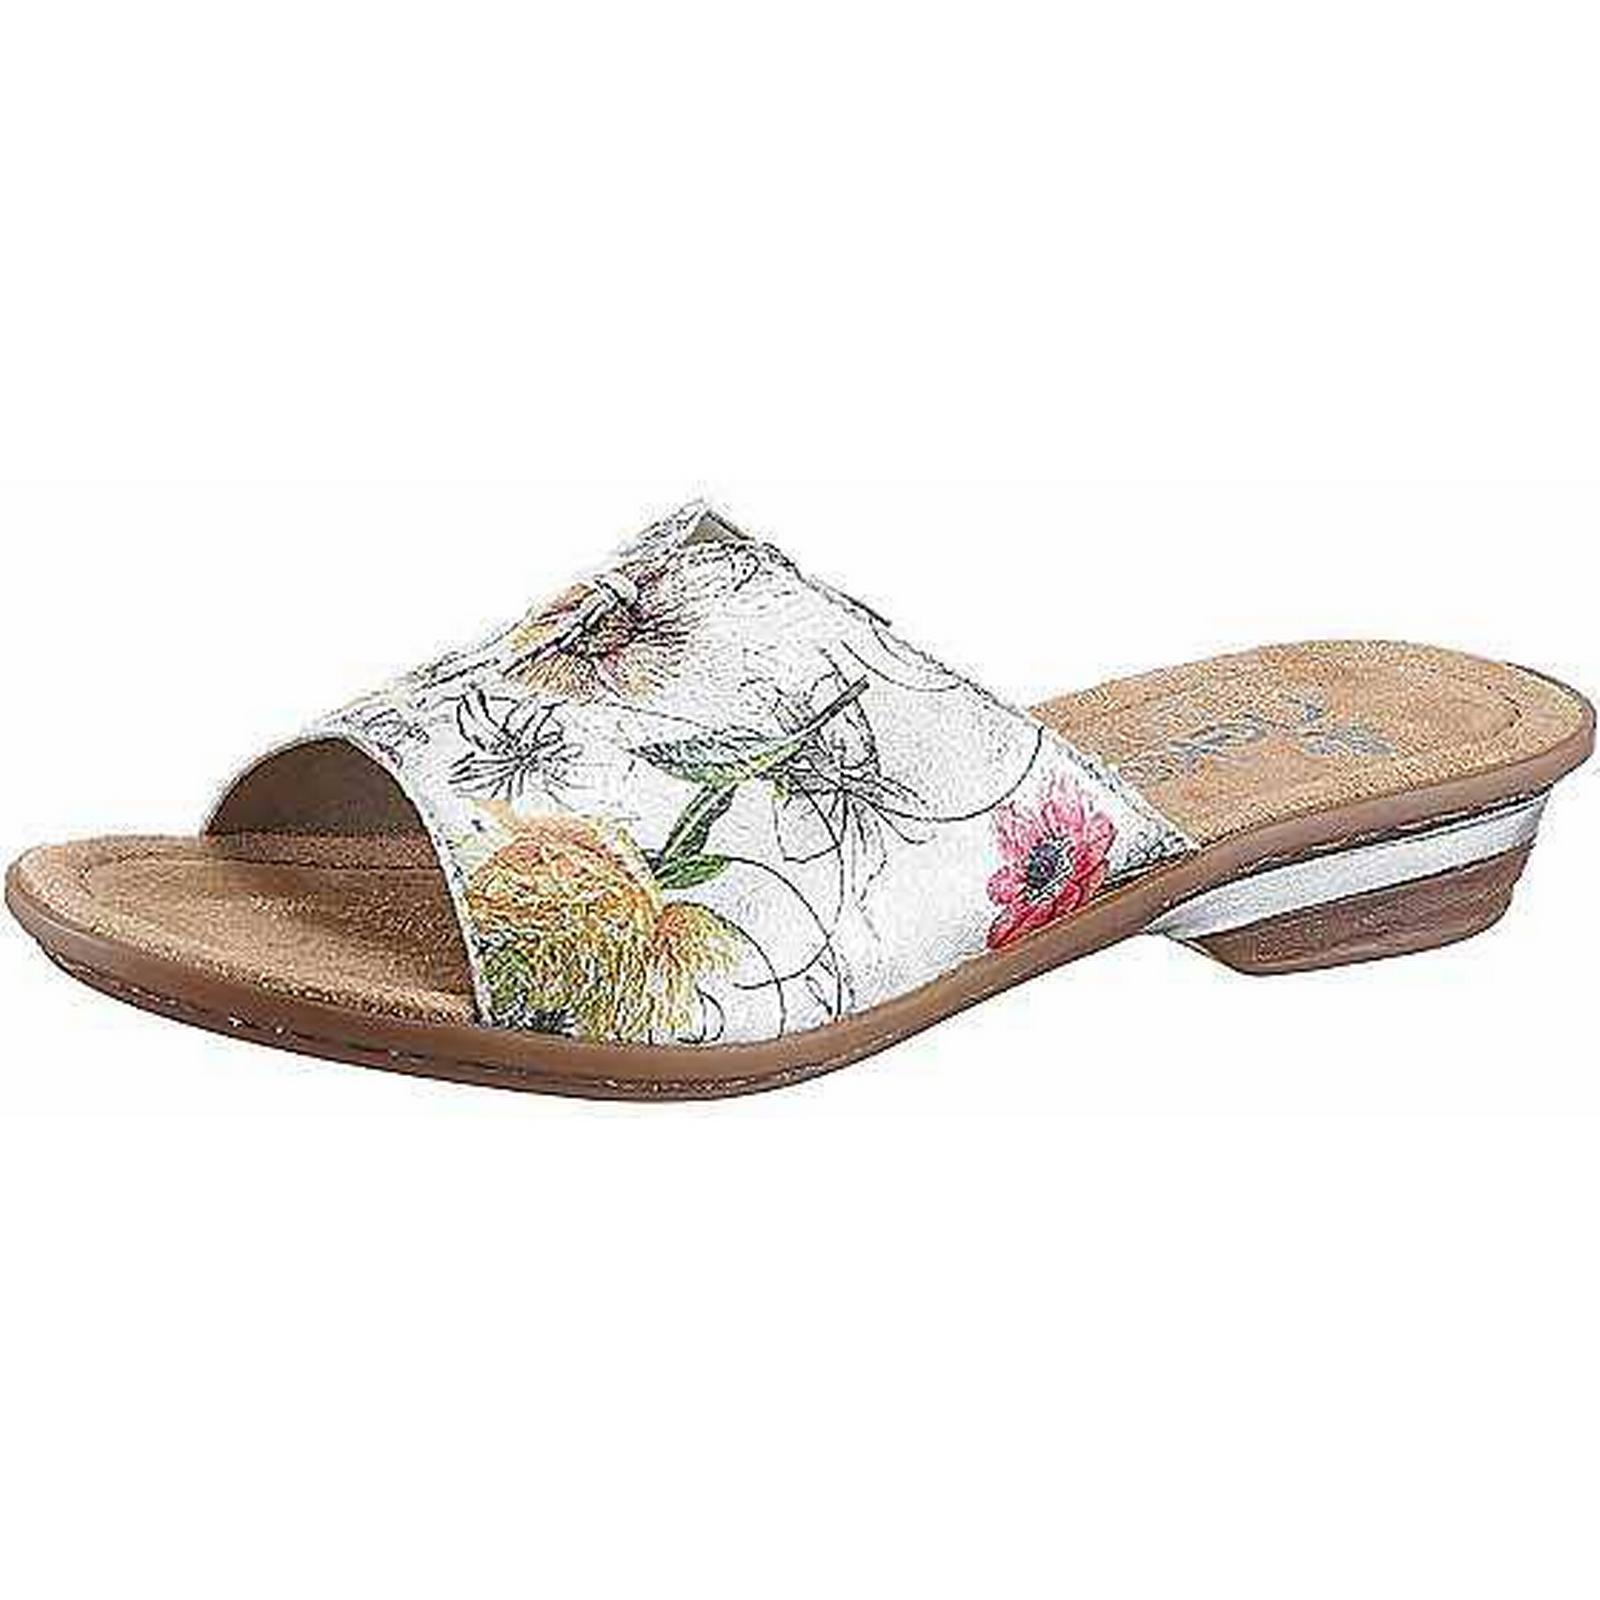 Rieker Floral Hot Print Mules By Rieker:Gentleman/Lady: Hot Floral sale in season e8f1cf